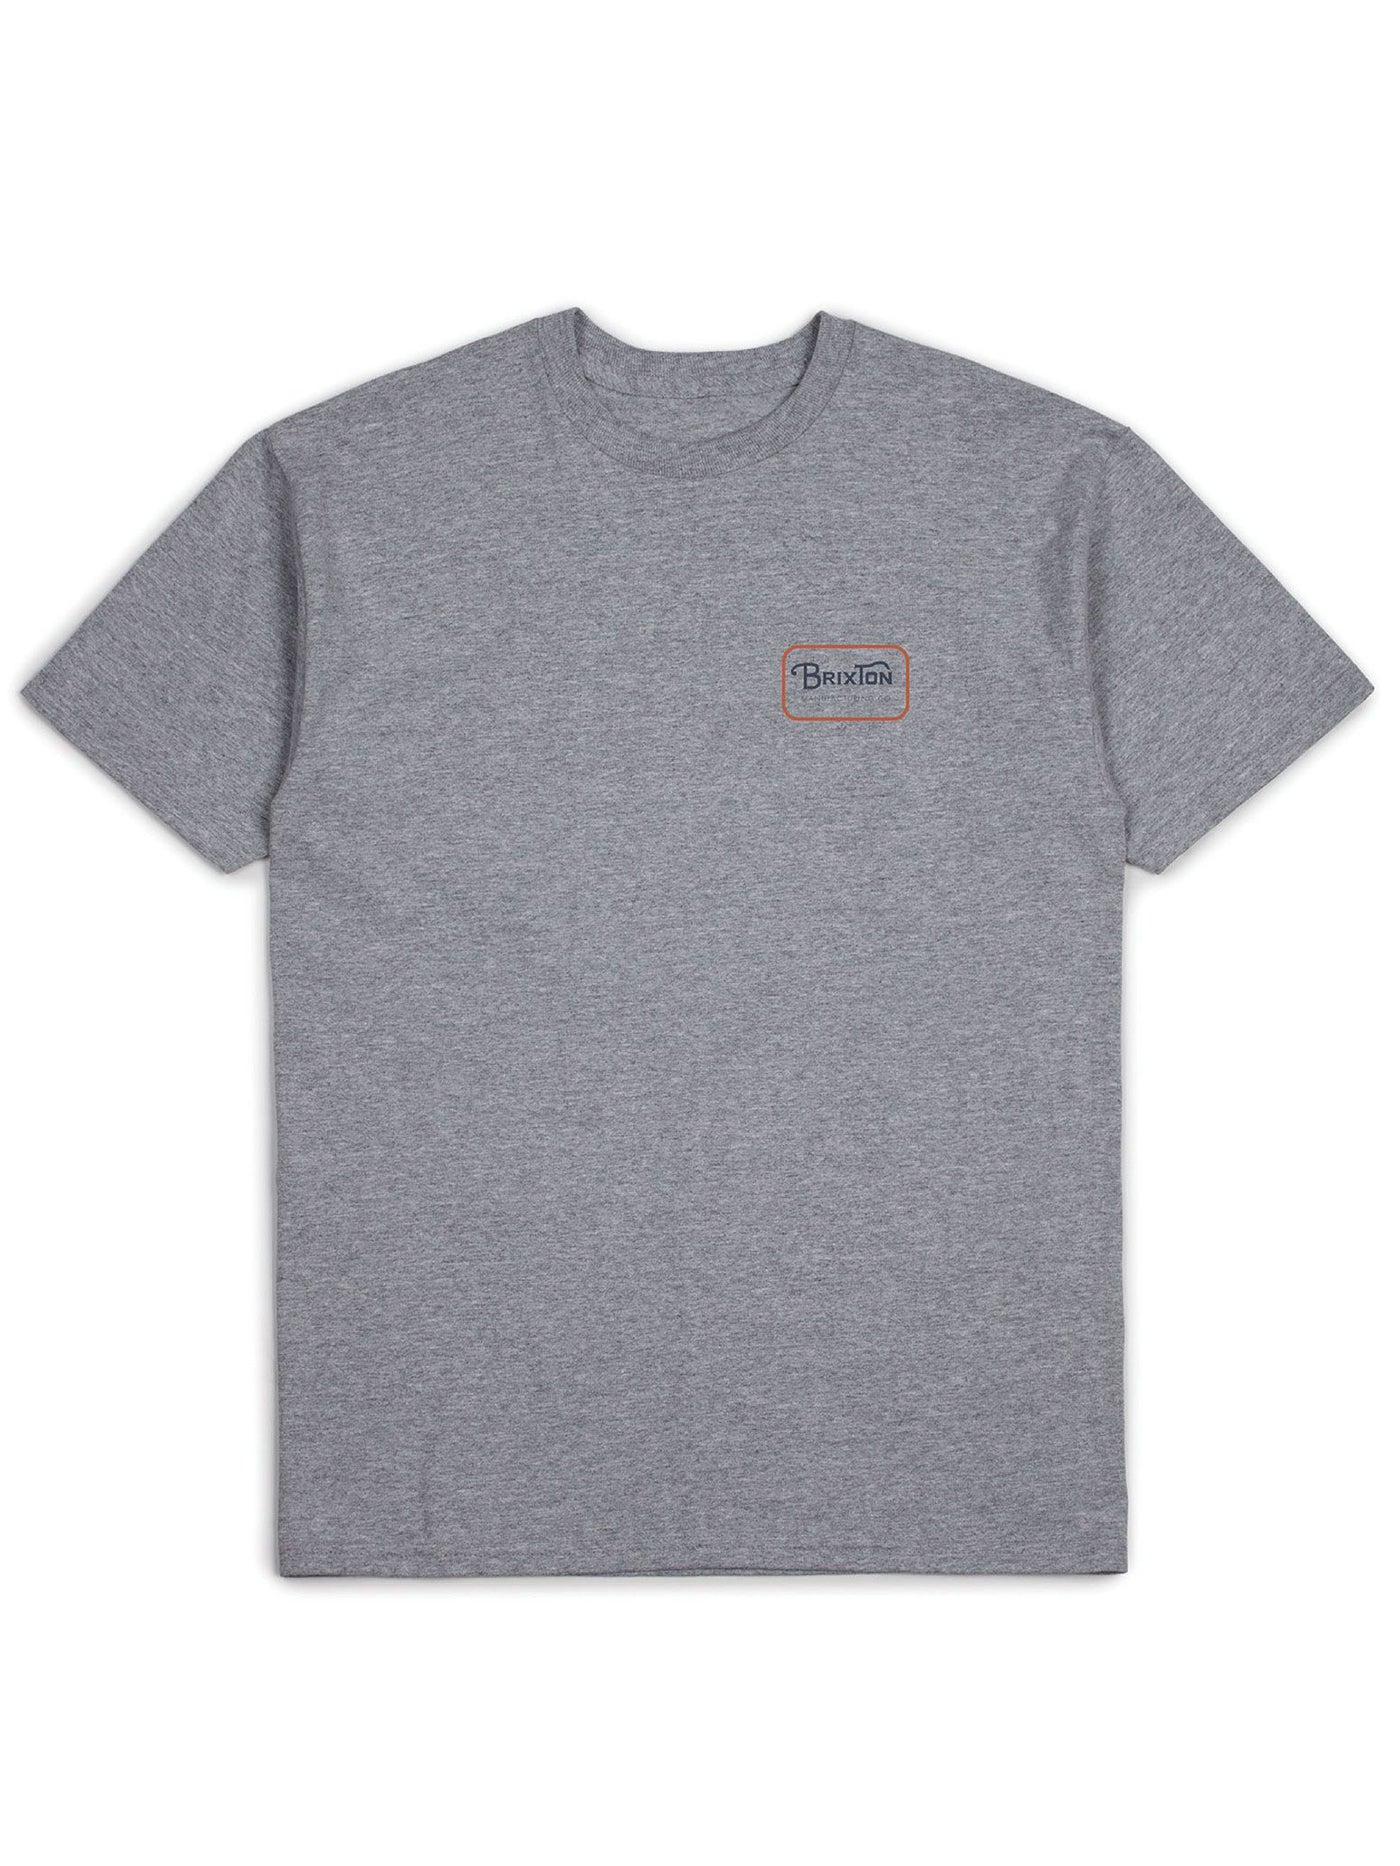 HEATHER GREY/ORANGE